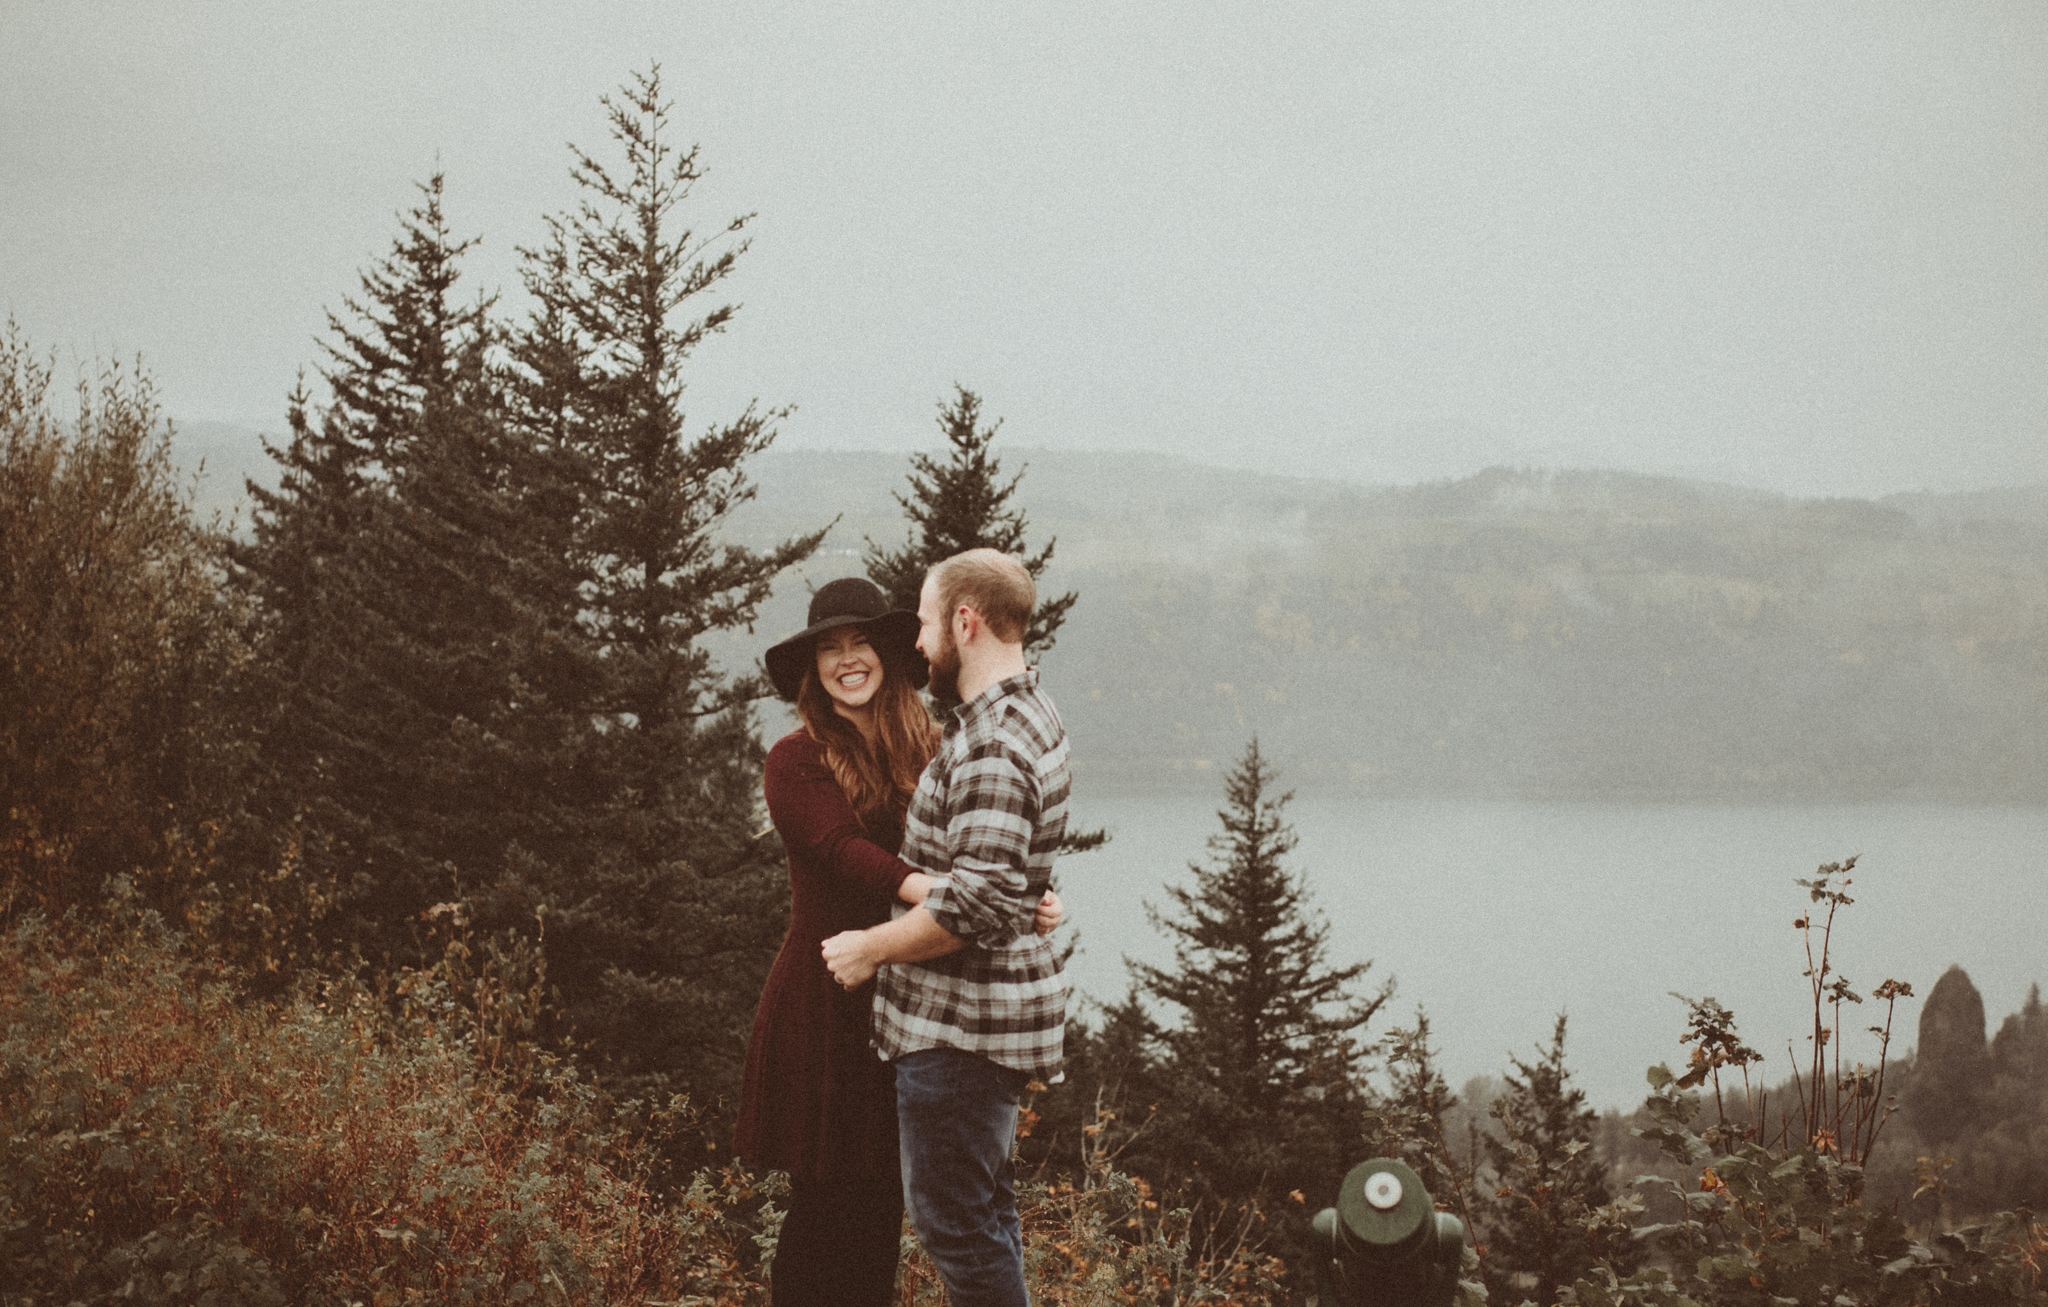 victoria columbia gorge engagement in the rain.  (25 of 125).jpg